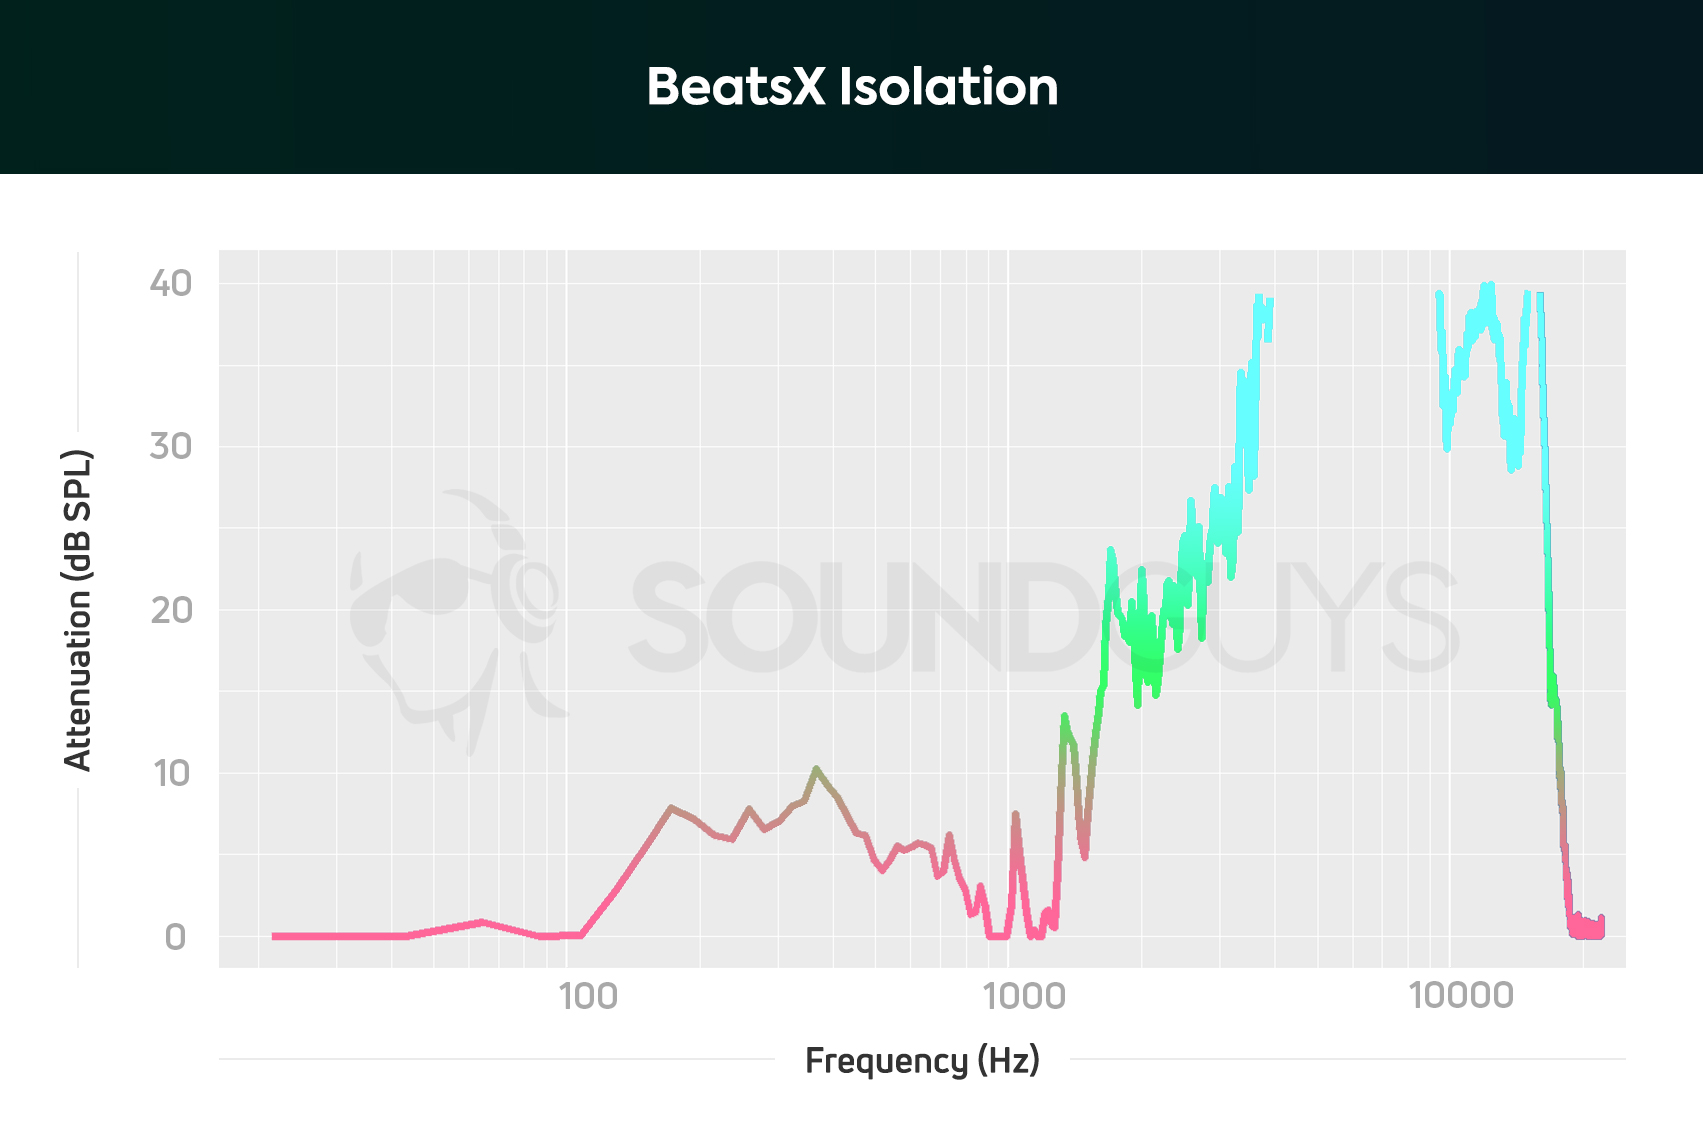 hight resolution of beatsx isolation graph illustrates that the earbuds are able to attenuate higher treble and midrange frequencies